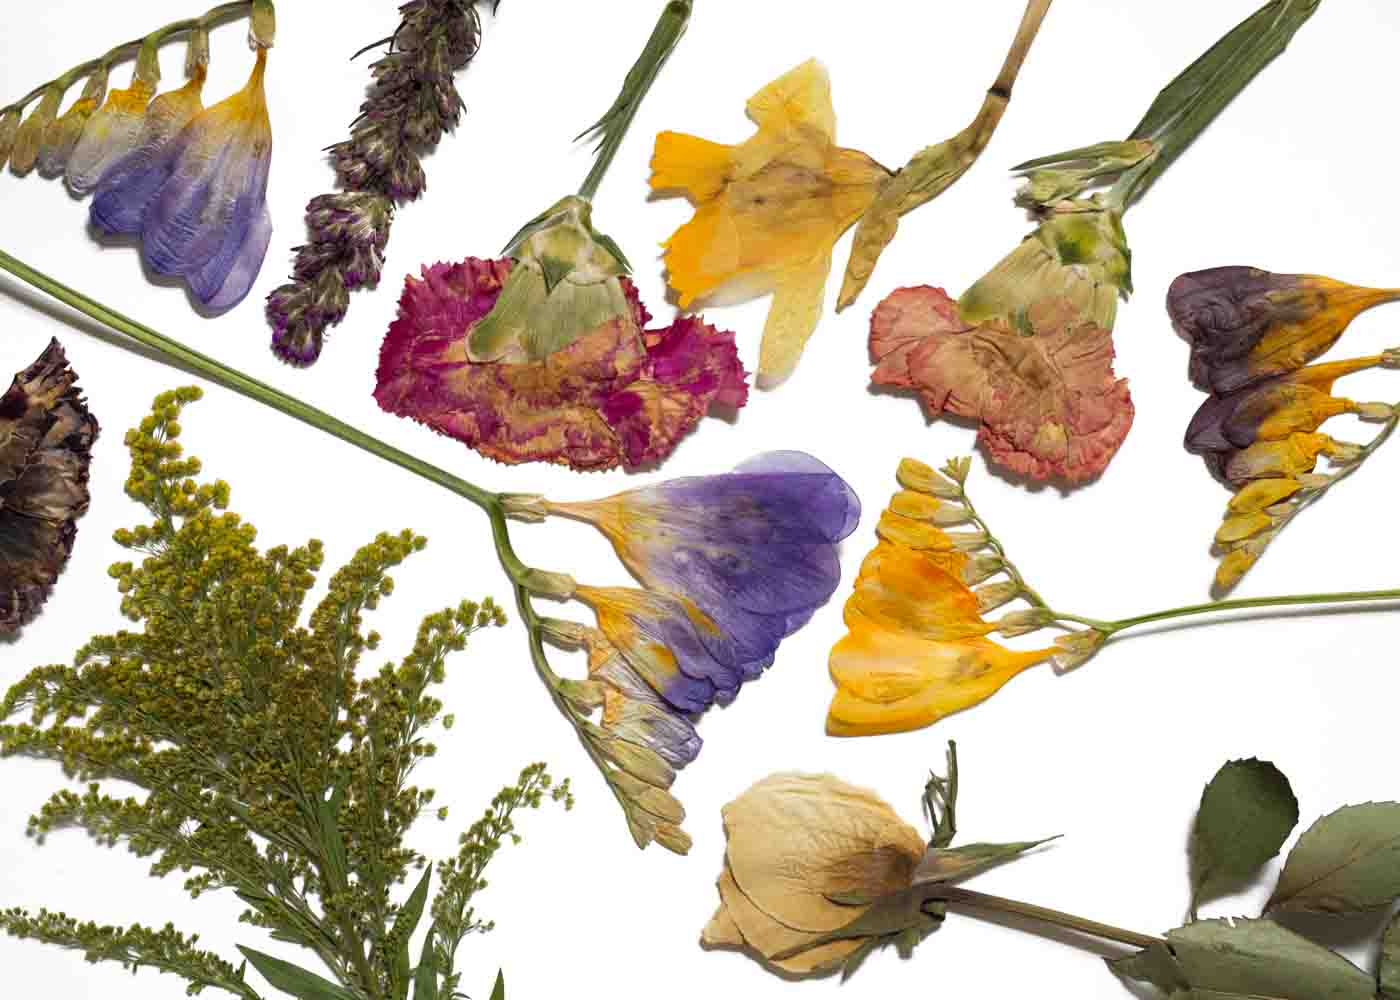 Drying flowers: the final results are perfect for garnishing gifts.